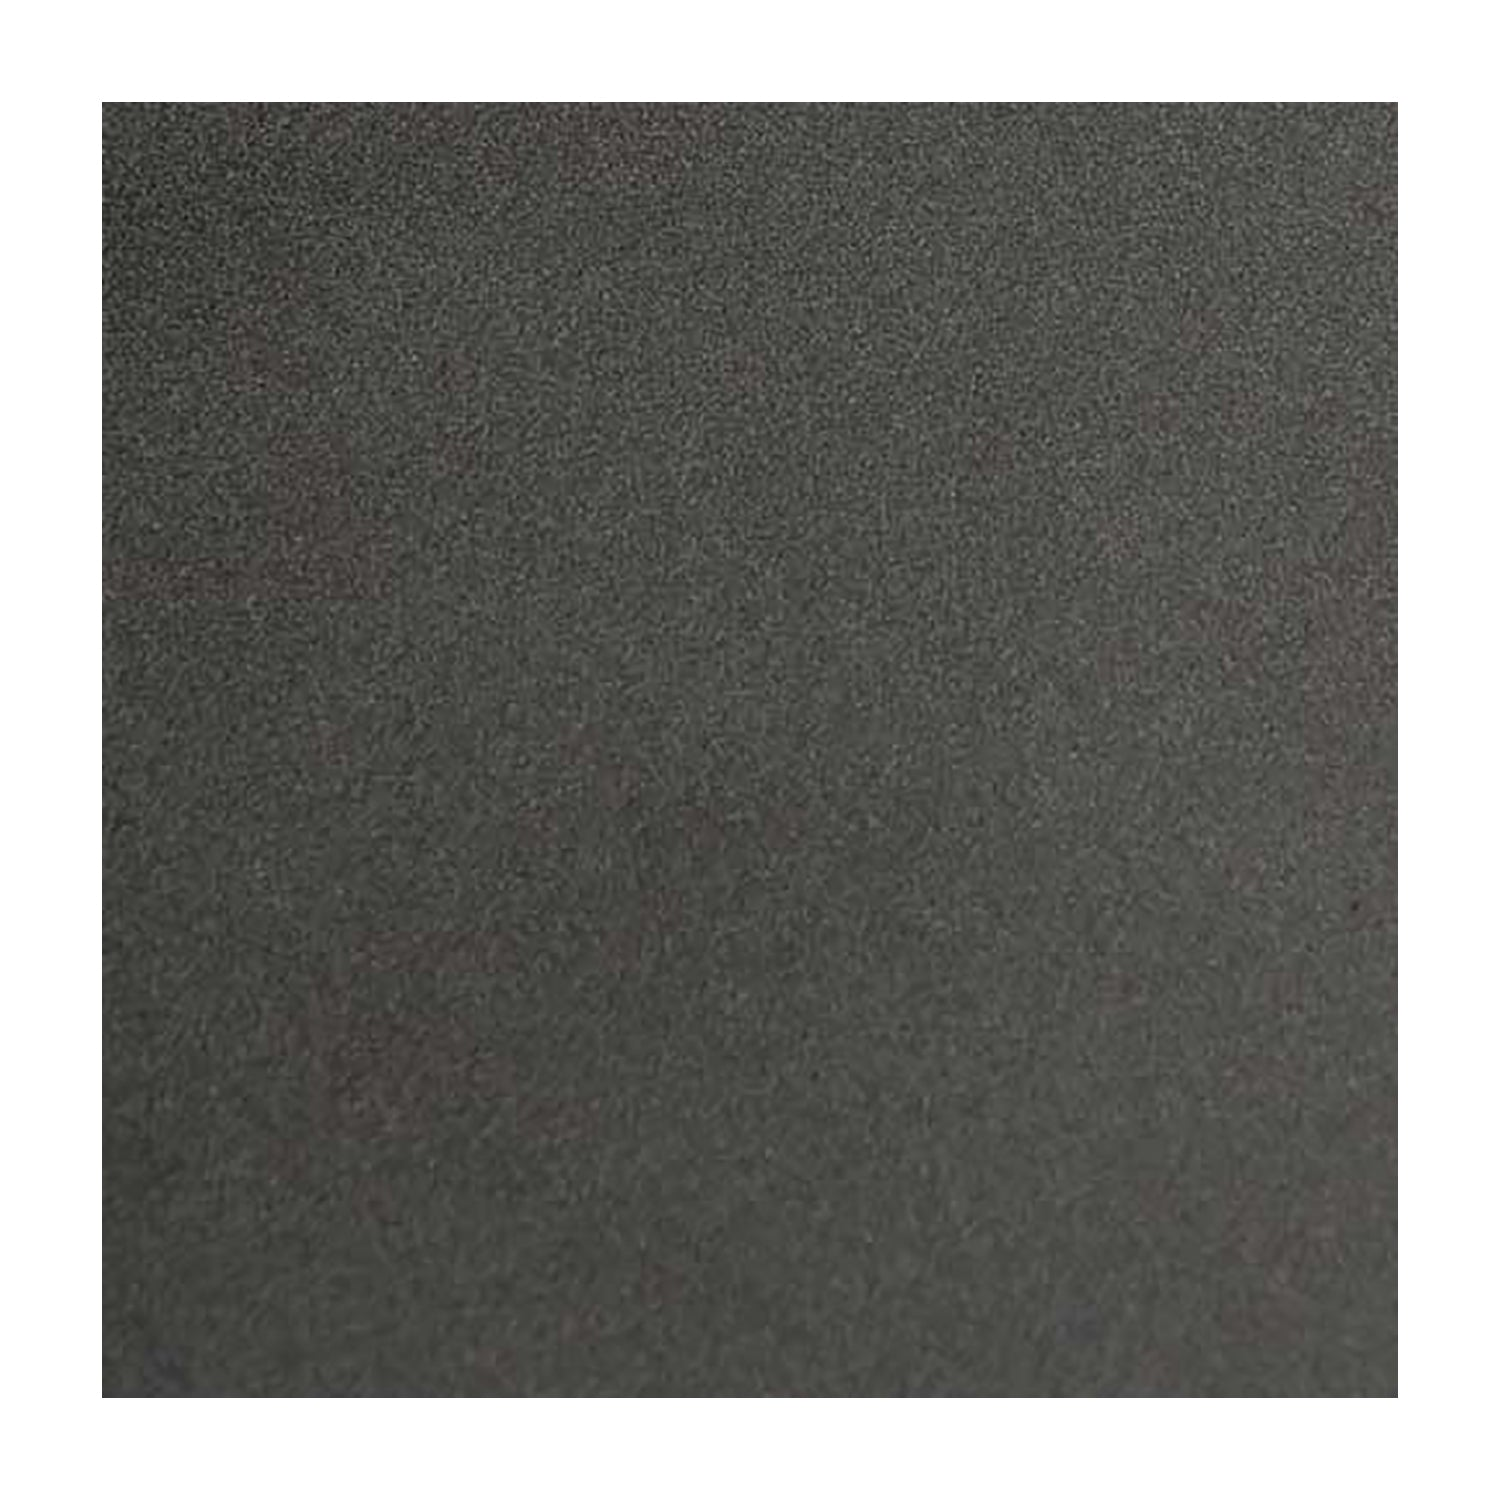 "Plastic: Planter Square Tall Grey Metallic Satin, 30""H"